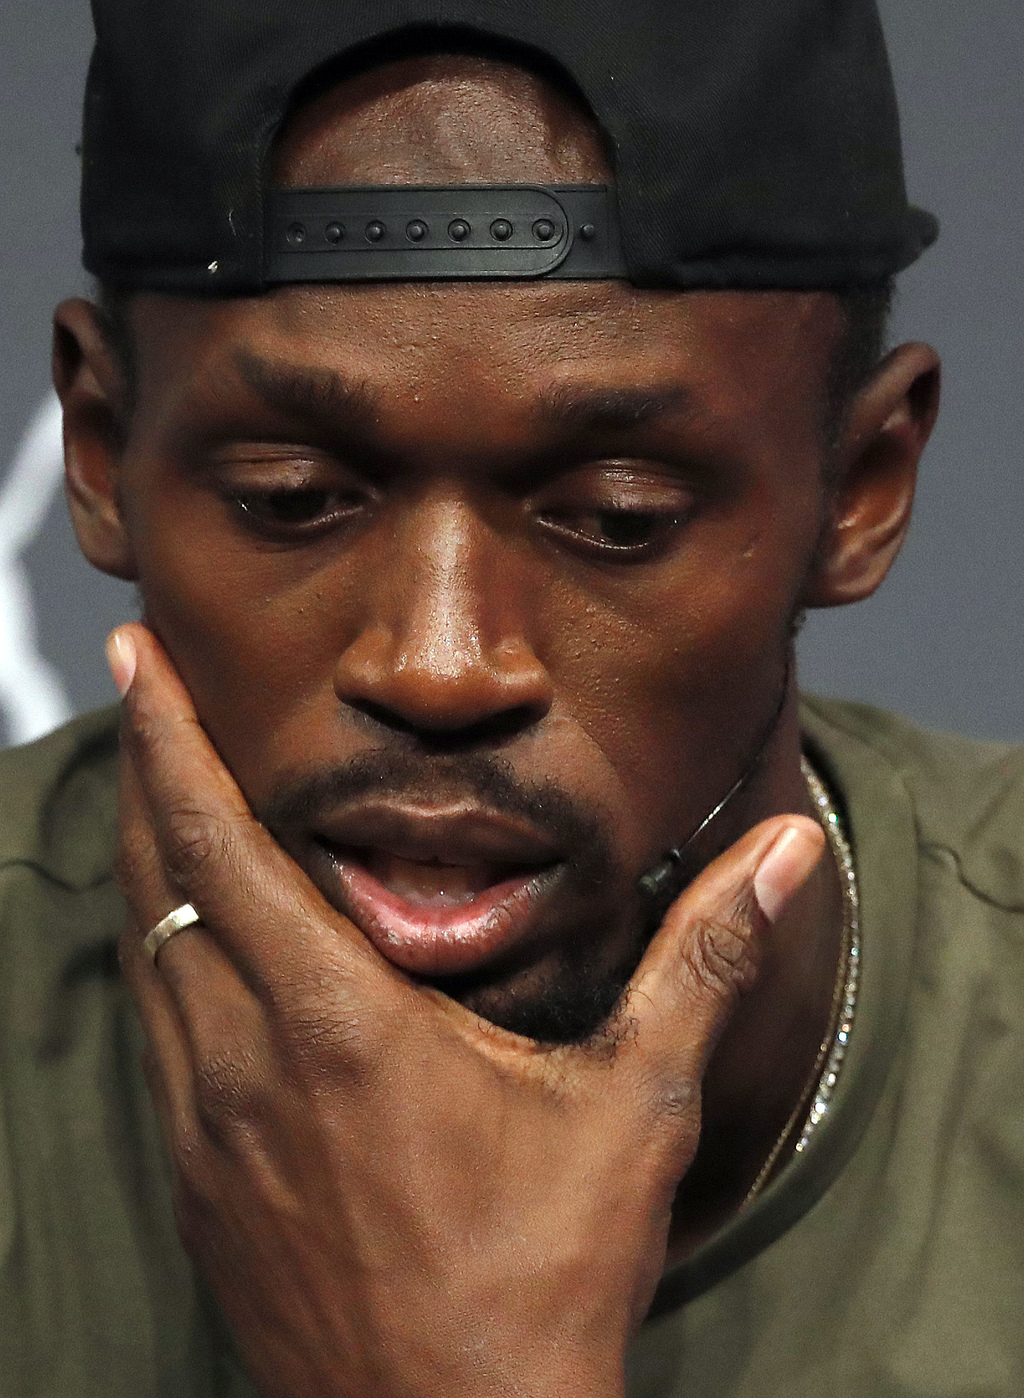 Jamaican athlete Usain Bolt pauses during a press conference ahead of the World Athletics championships in London, Tuesday, Aug. 1, 2017. Sprint legen...